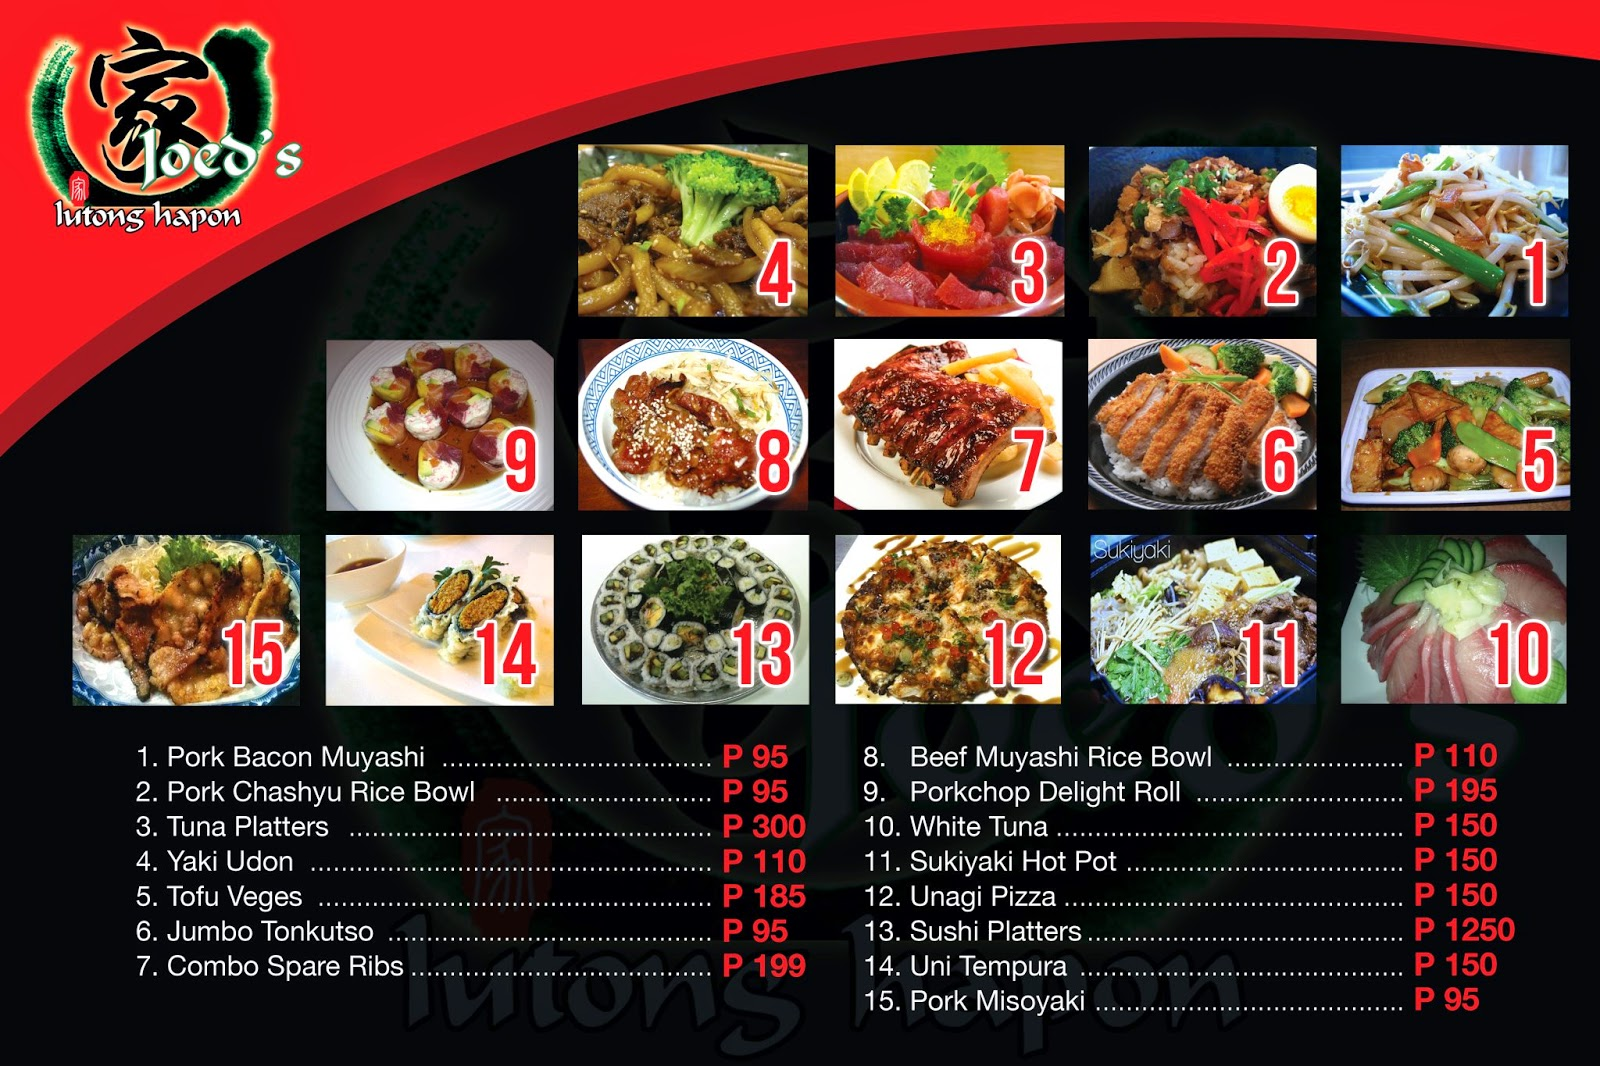 #032eatdrink, food, cebu, japanese food, cheap japanese, Joed's Lutong Hapon menu